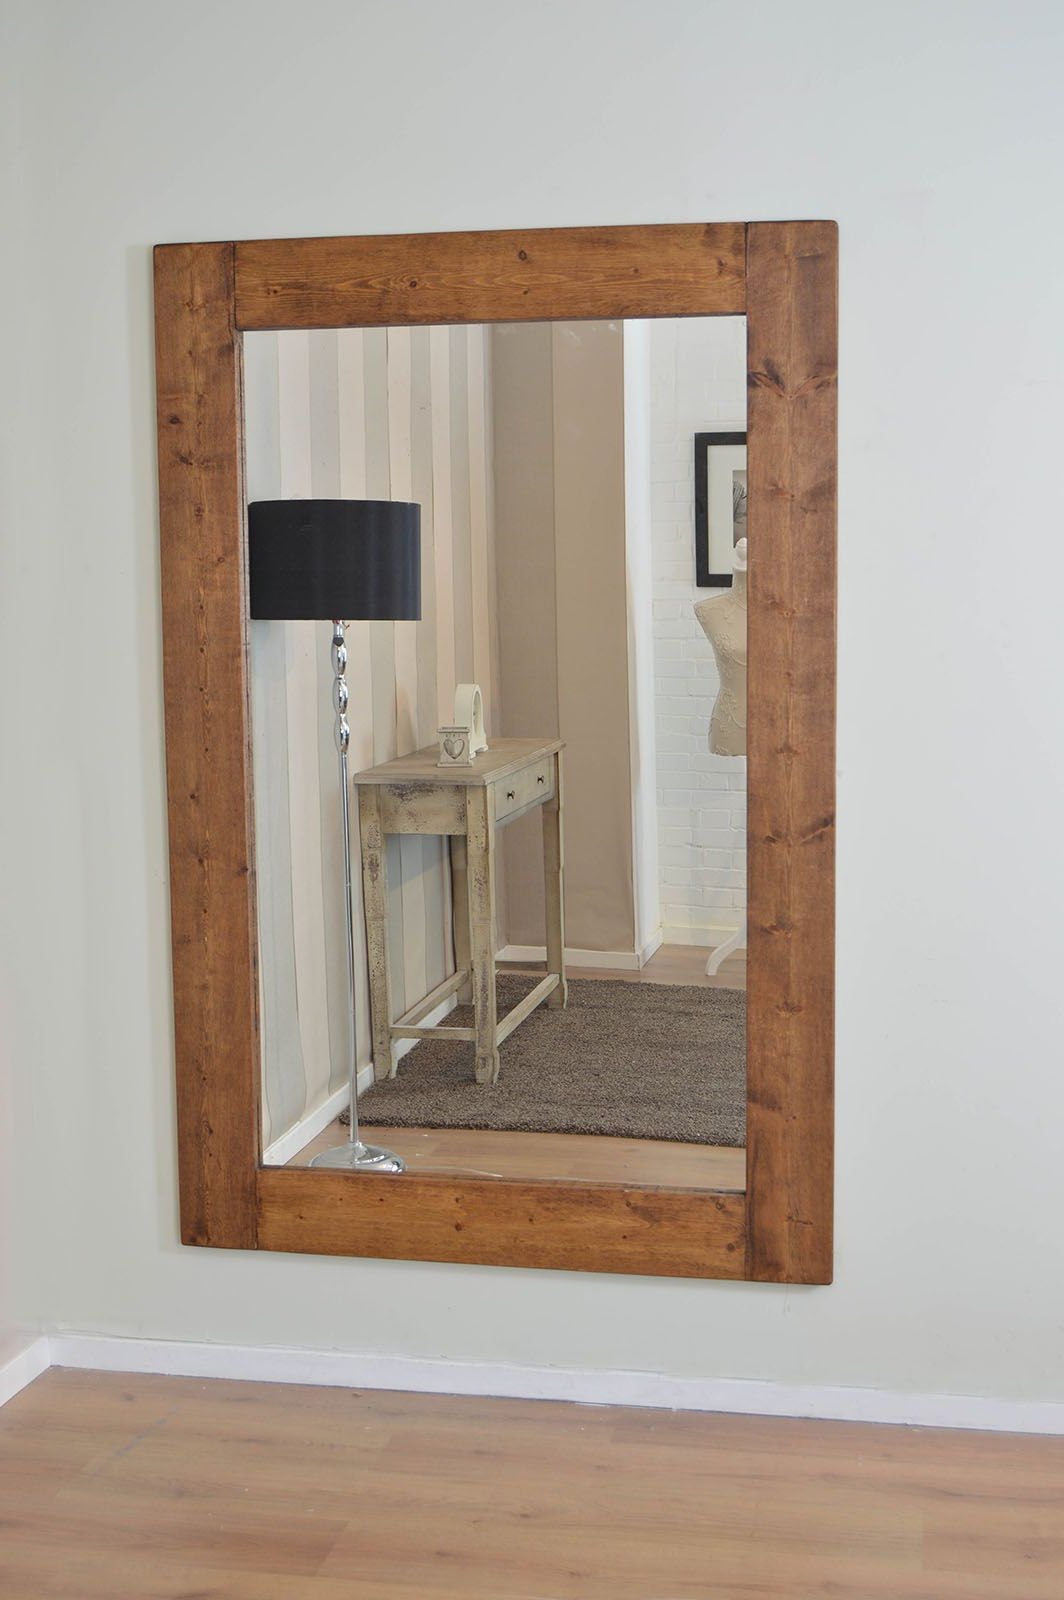 Large Solid Wood Wall Mirror 5Ft10 X 3Ft10 (178Cm X 117Cm For Well Known Large Wooden Wall Mirrors (View 9 of 20)